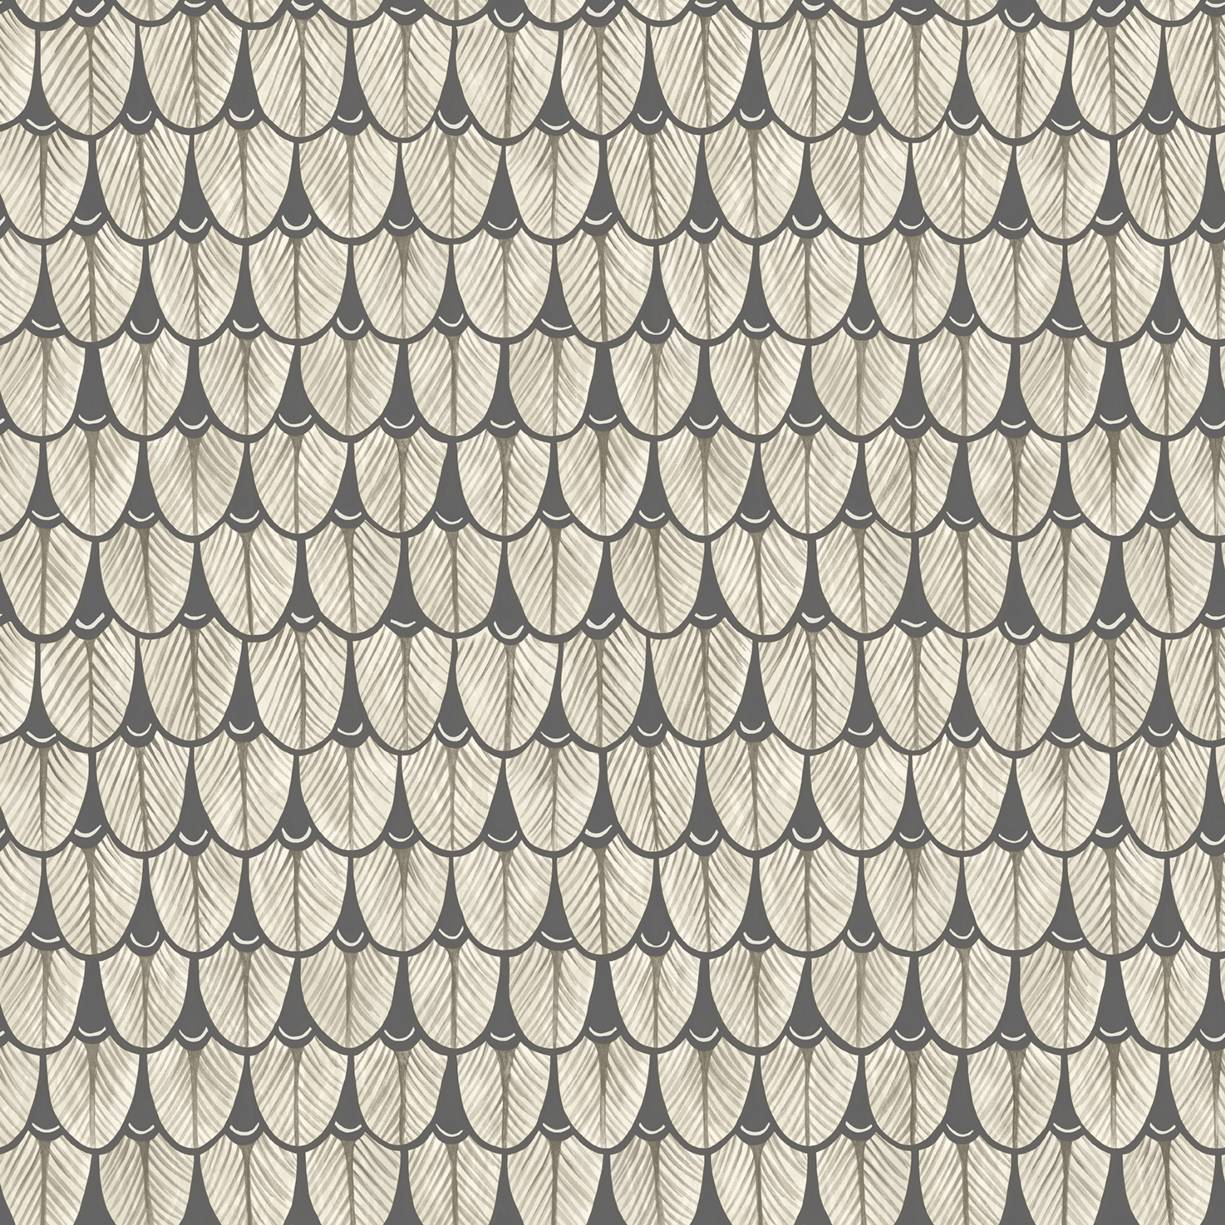 109-10048 Narina- The Ardmore Collection- Cole & Son - 72dpi - RGB